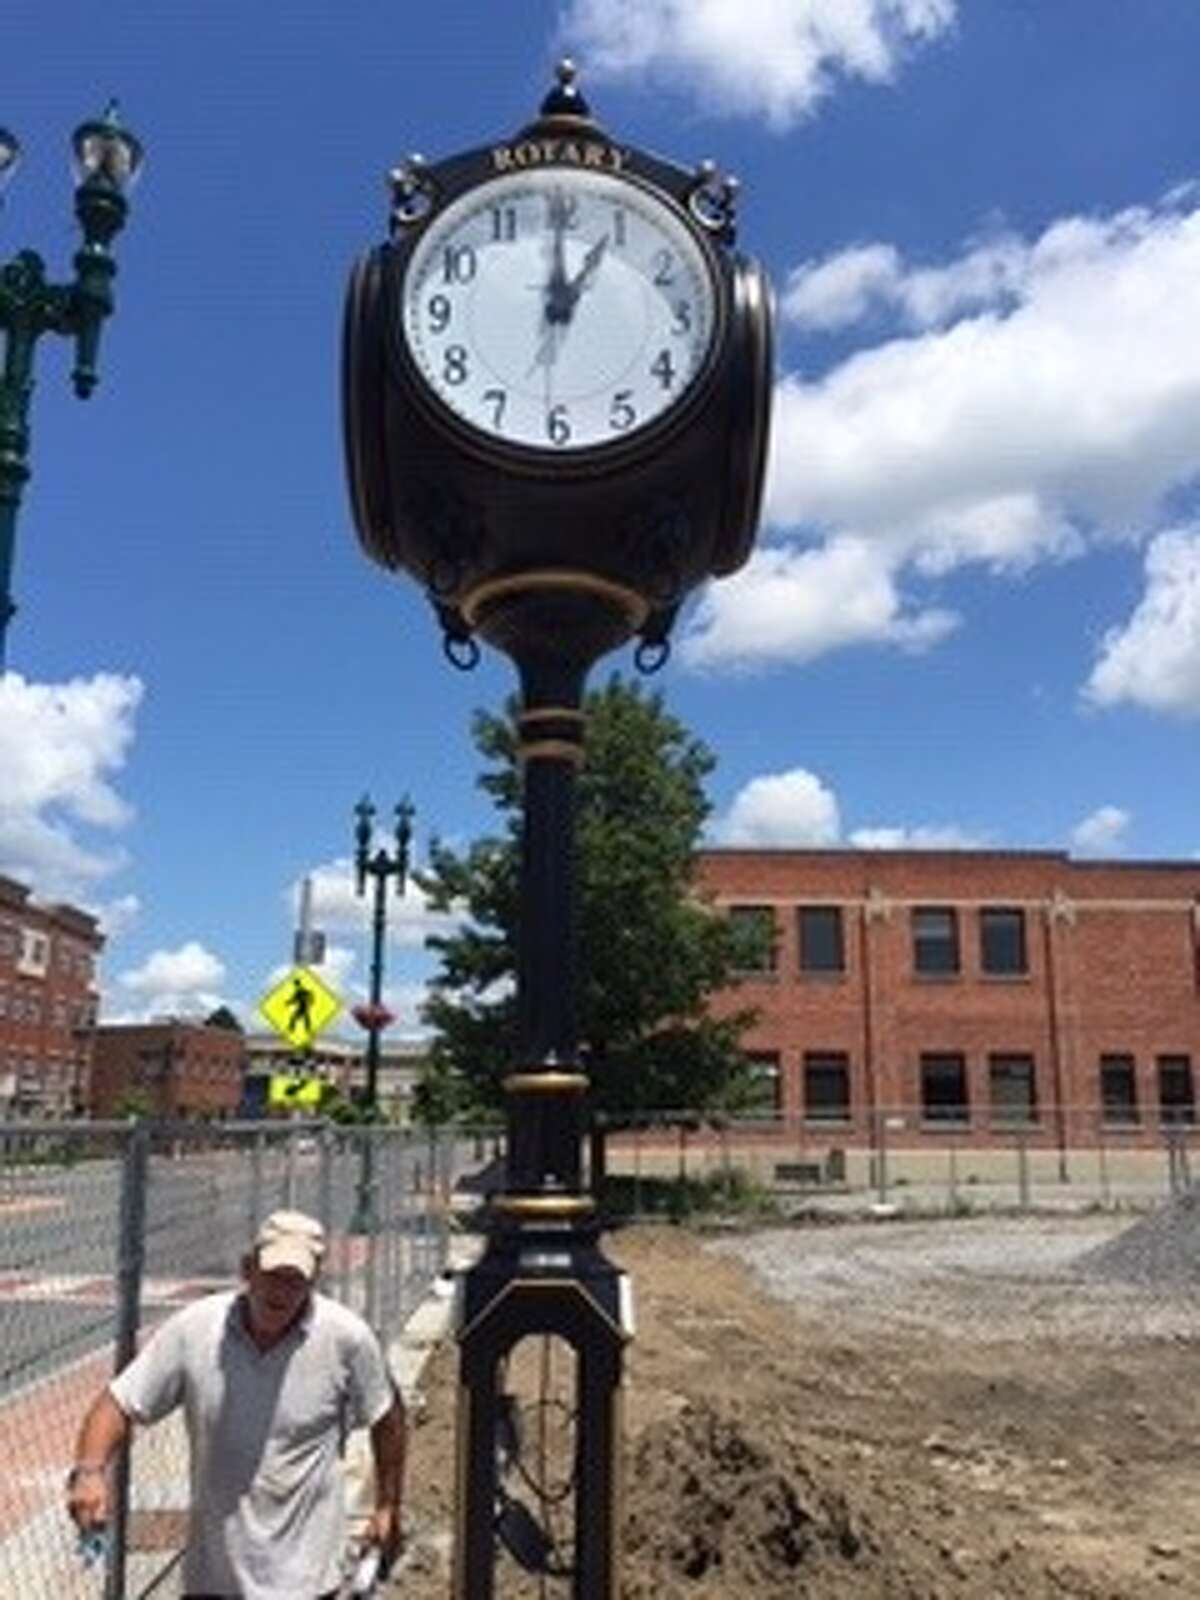 A street clock was installed near the pedestrian overpass on Erie Boulevard, Schenectady. The site will soon feature a walkway connecting the Harbor District to Jay Street (Little Italy) from Erie Boulevard. The clock was gifted to the city by the Schenectady Rotary Club in celebration of its 100th anniversary. It will be inscribed with the names of individuals, families, organizations and businesses. The participation fee for each inscription (up to 25 characters including spaces) is $250. Space limited to a total of 100 inscriptions. Details: www.schenectadyrotary.org.